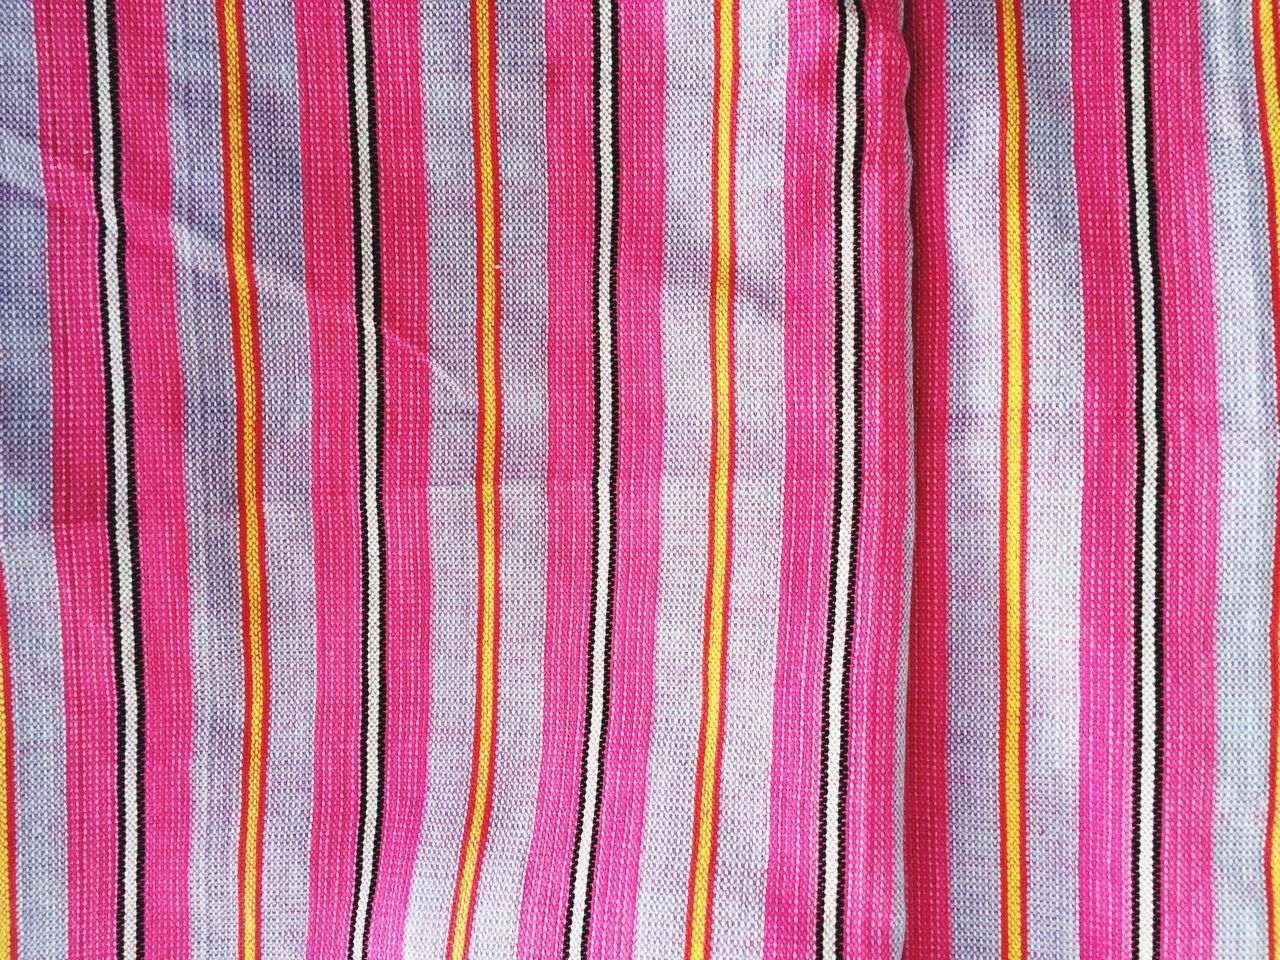 backgrounds, pattern, textile, blanket, striped, multi colored, textured, full frame, wool, material, abstract, pink color, blue, market, red, close-up, no people